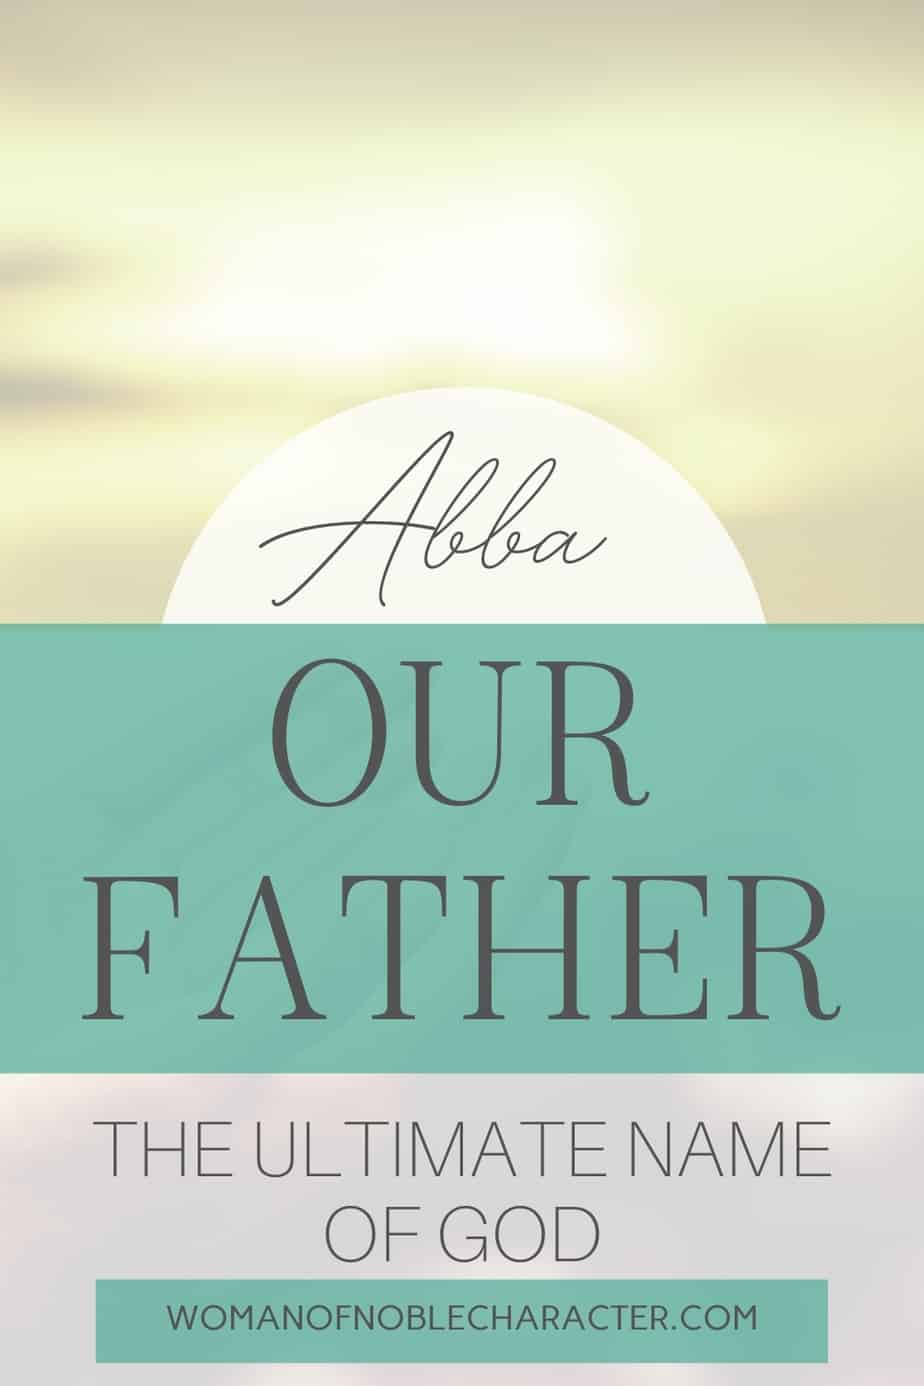 image of sunlight with text Exploring the names of God, Abba, Our Father. Where we find it in scripture and why this name is so critical to our faith in Him.